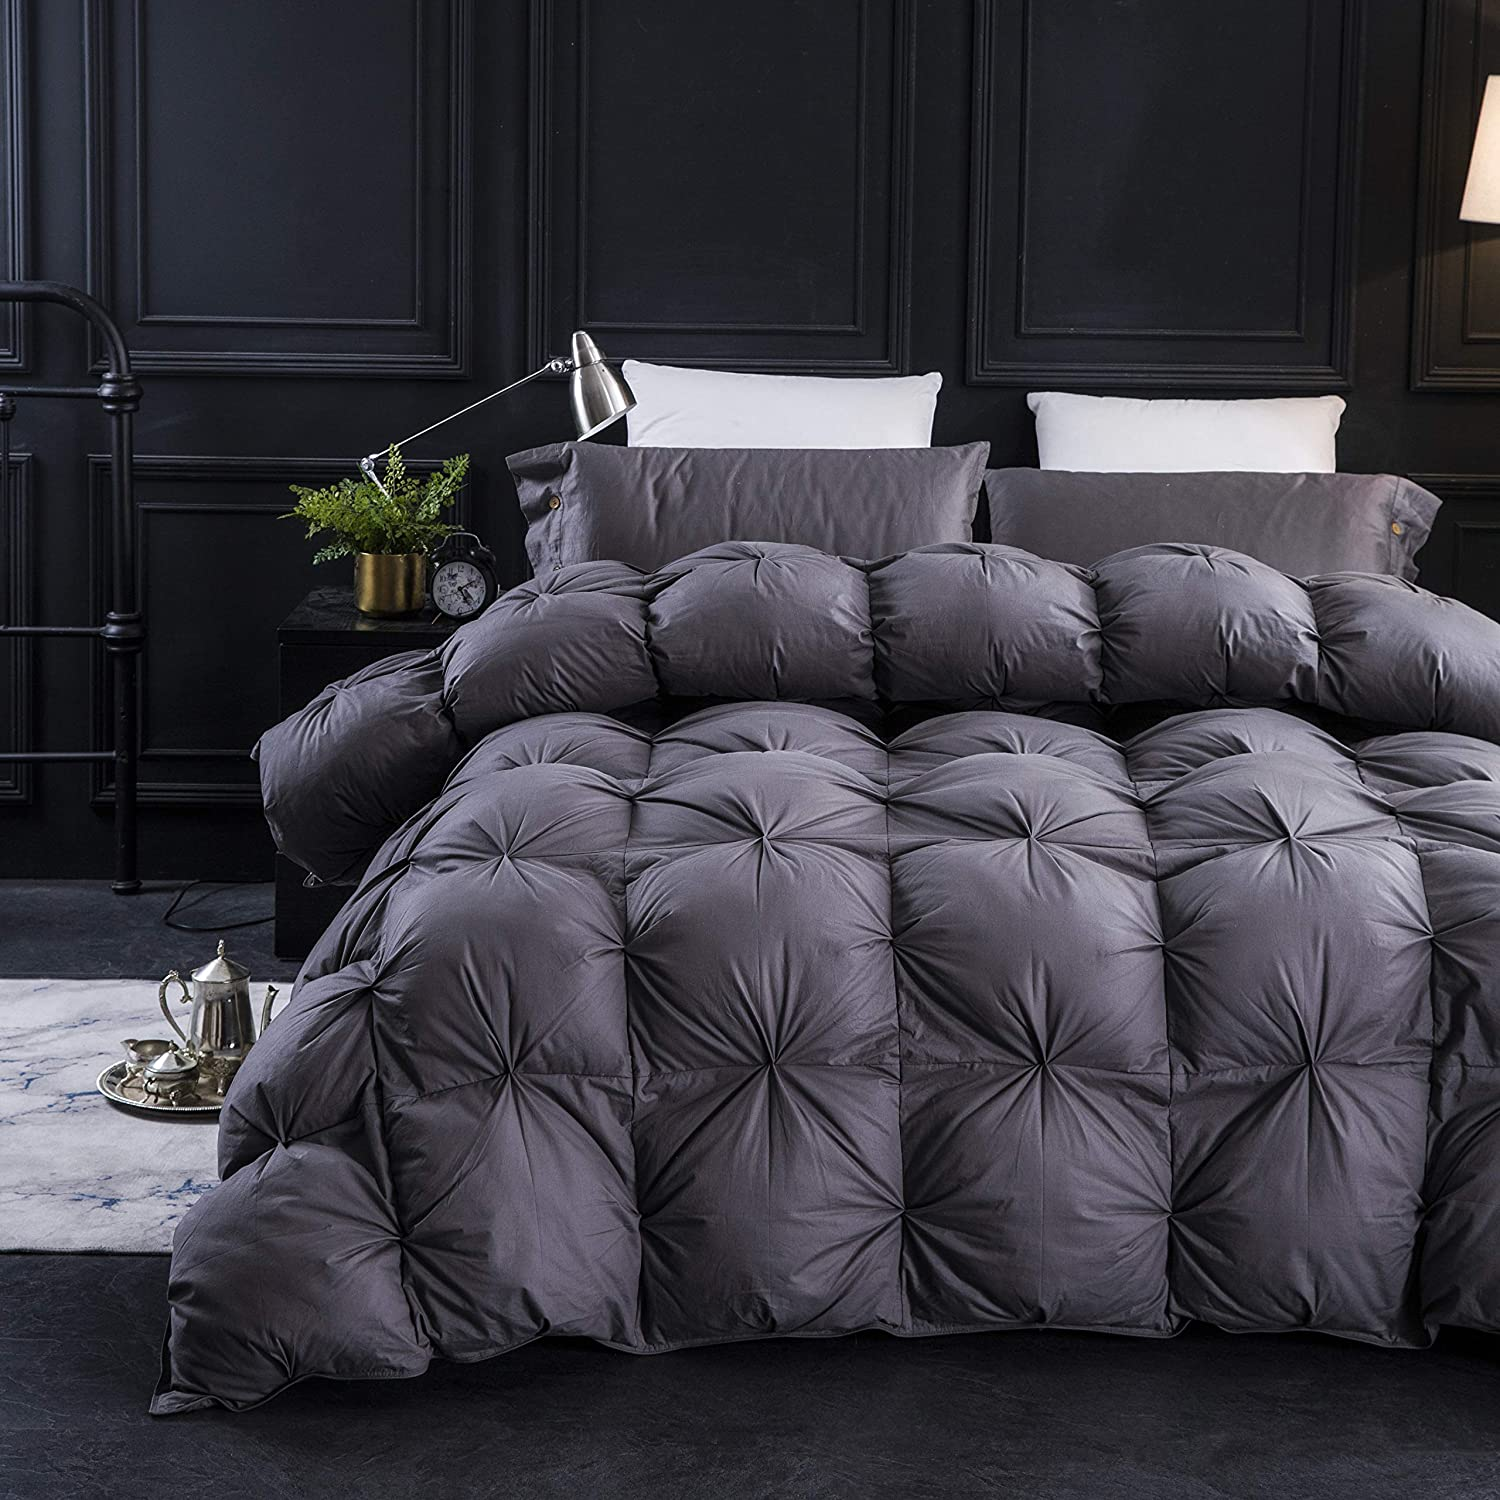 Three Geese Pinch Pleat Goose Down Comforter Queen Size Duvet Insert 750+ Fill Power 100% Cotton Fabric Hypo-allergenic Down Proof with 8 Tabs